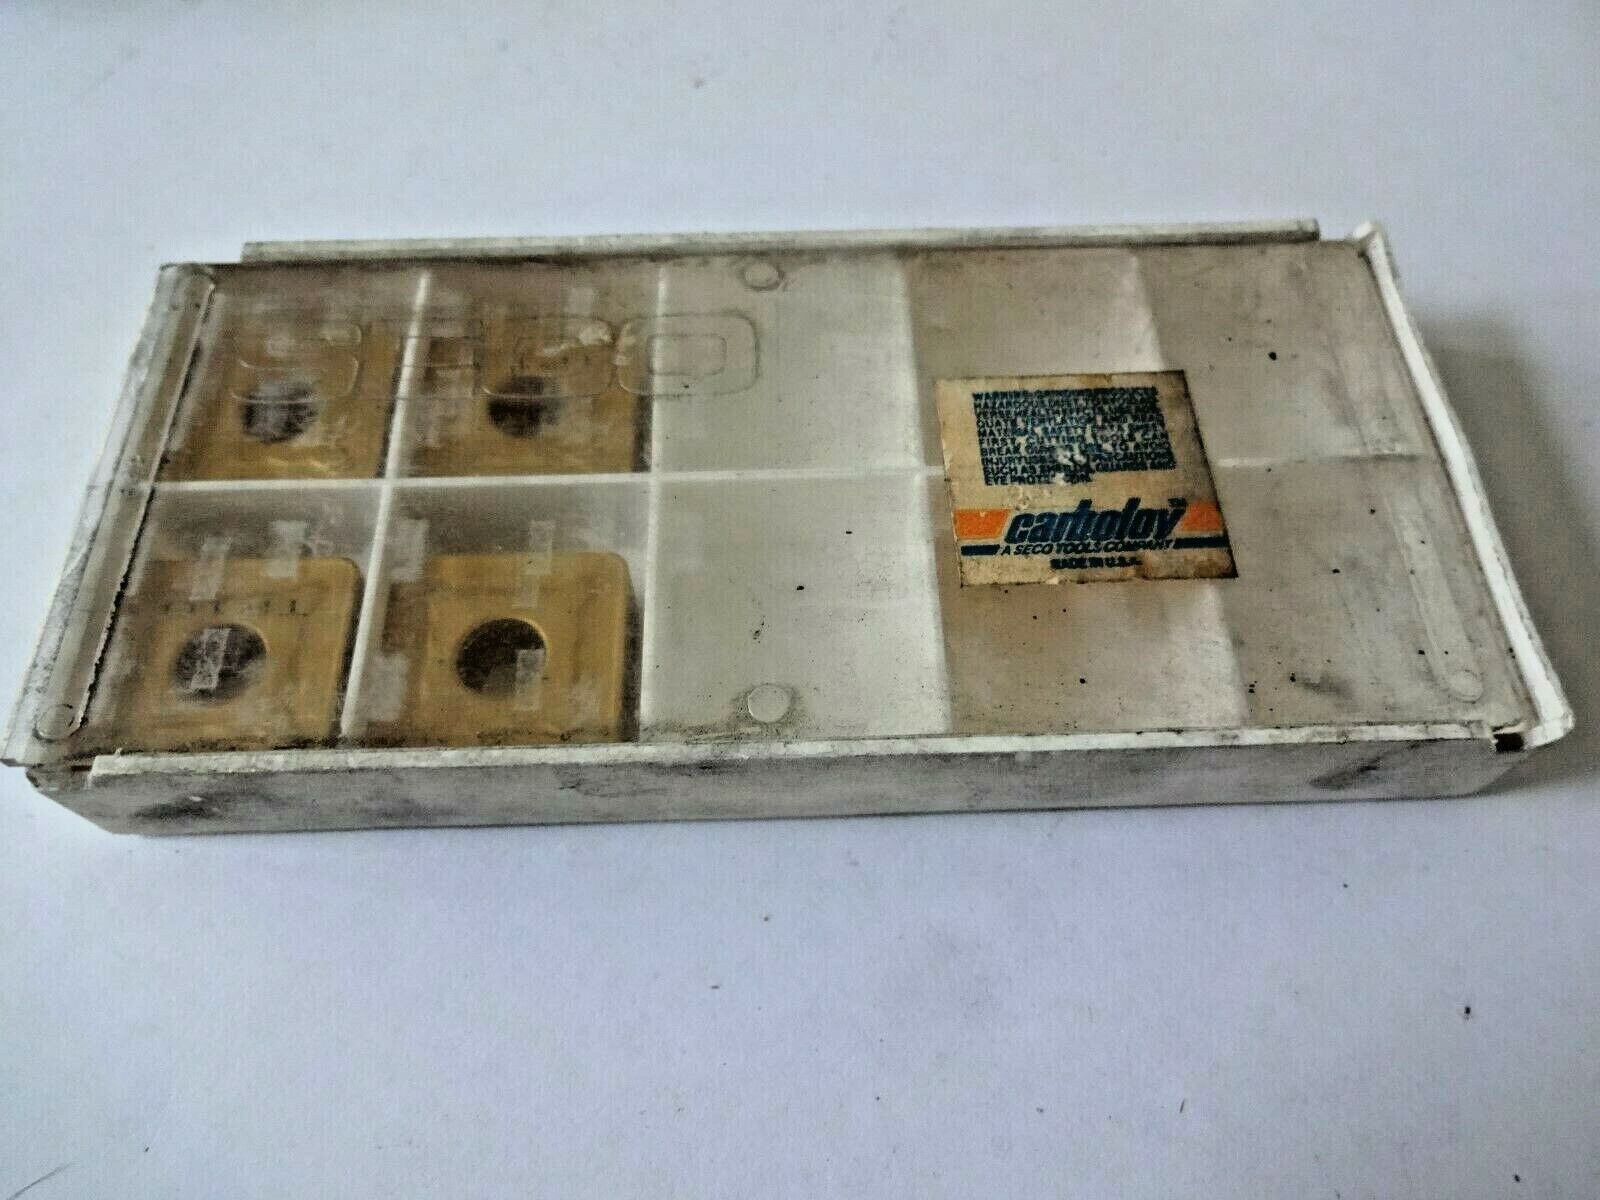 Seco Cnmg 160616-MR7 TP1501 Indexable Inserts Carbide Inserts factory sealed